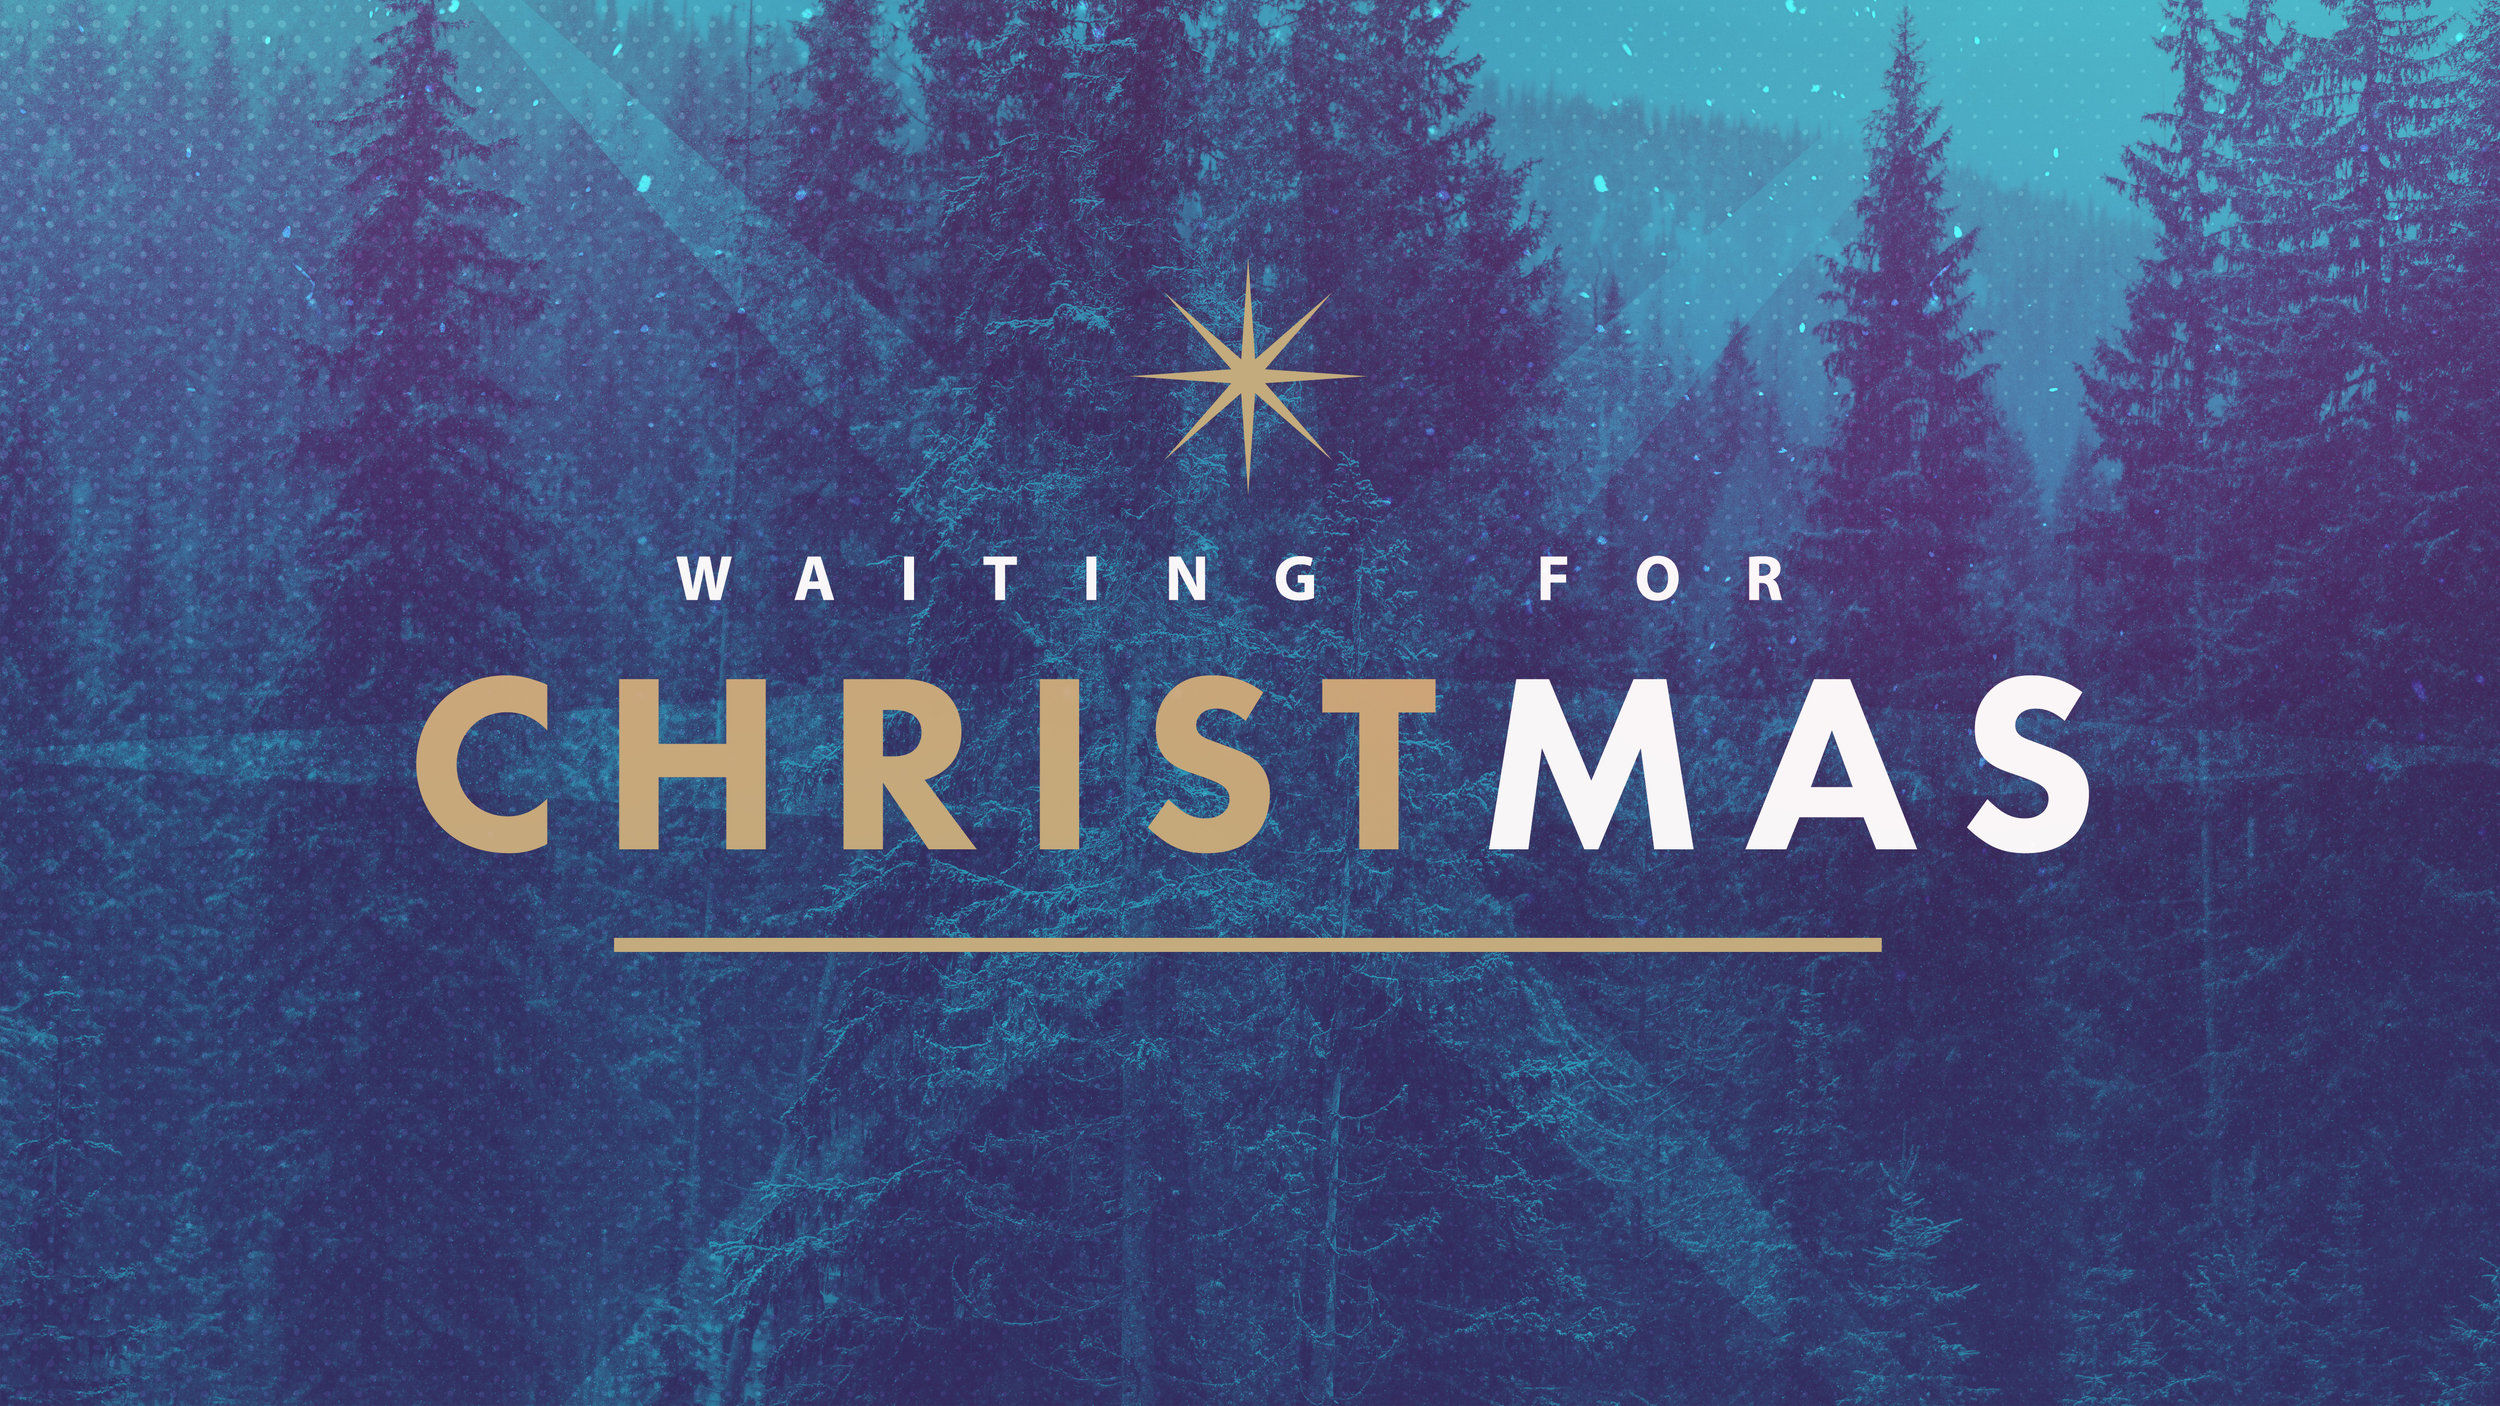 Waiting-For-Christmas Series Graphic.jpg